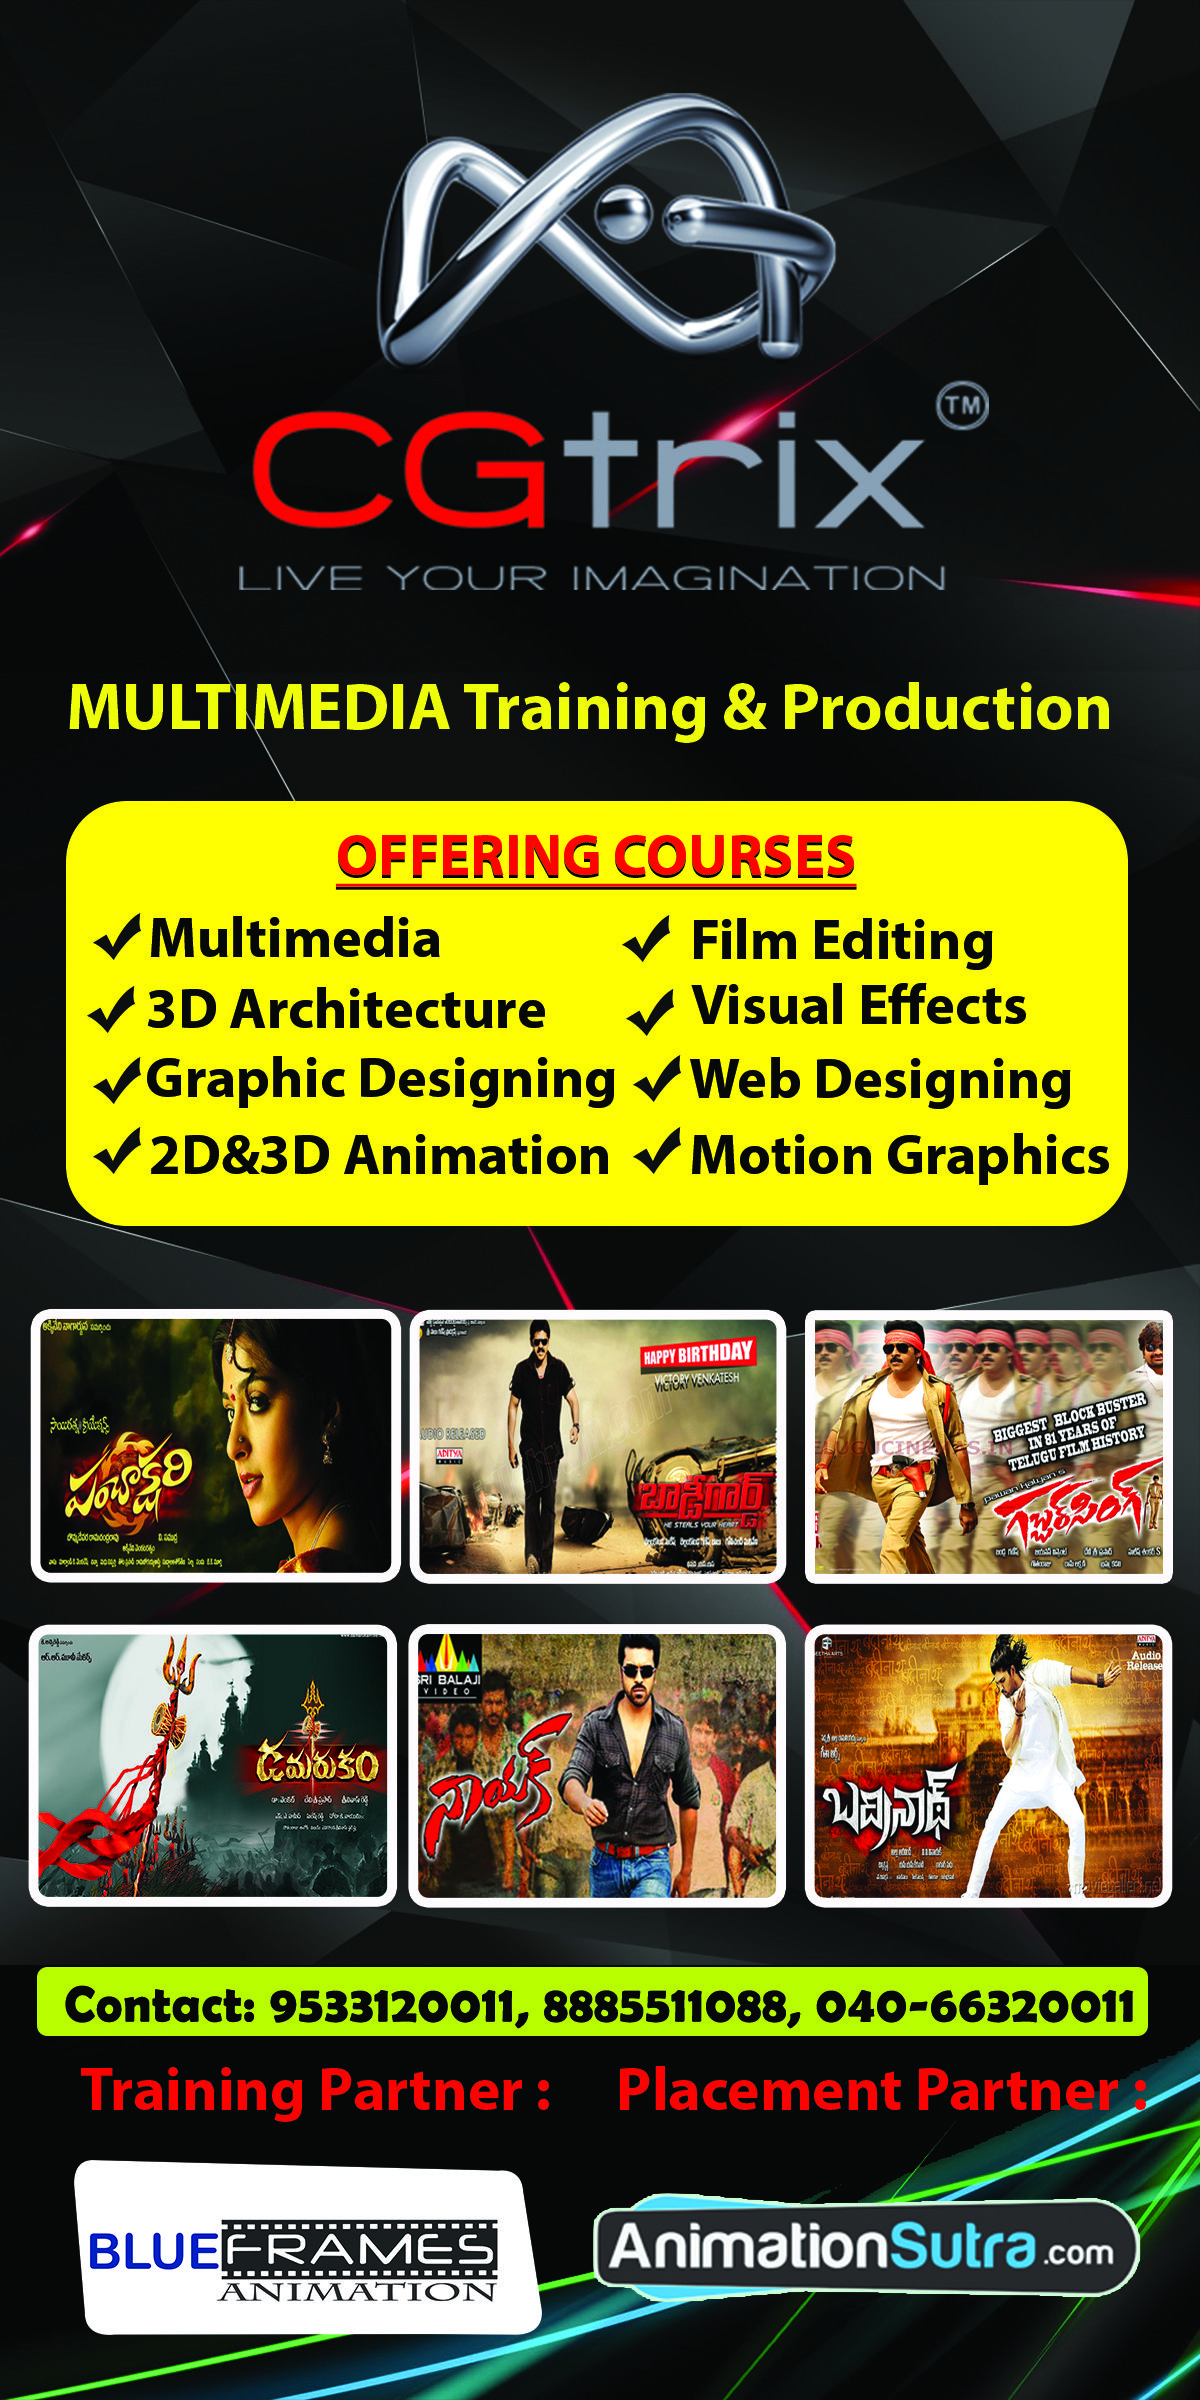 Cgtrix Is An Production Training Center For Animation Multimedia At Hyderabad Provides Training In Vfx Cour Vfx Course Animation Institute Training Center